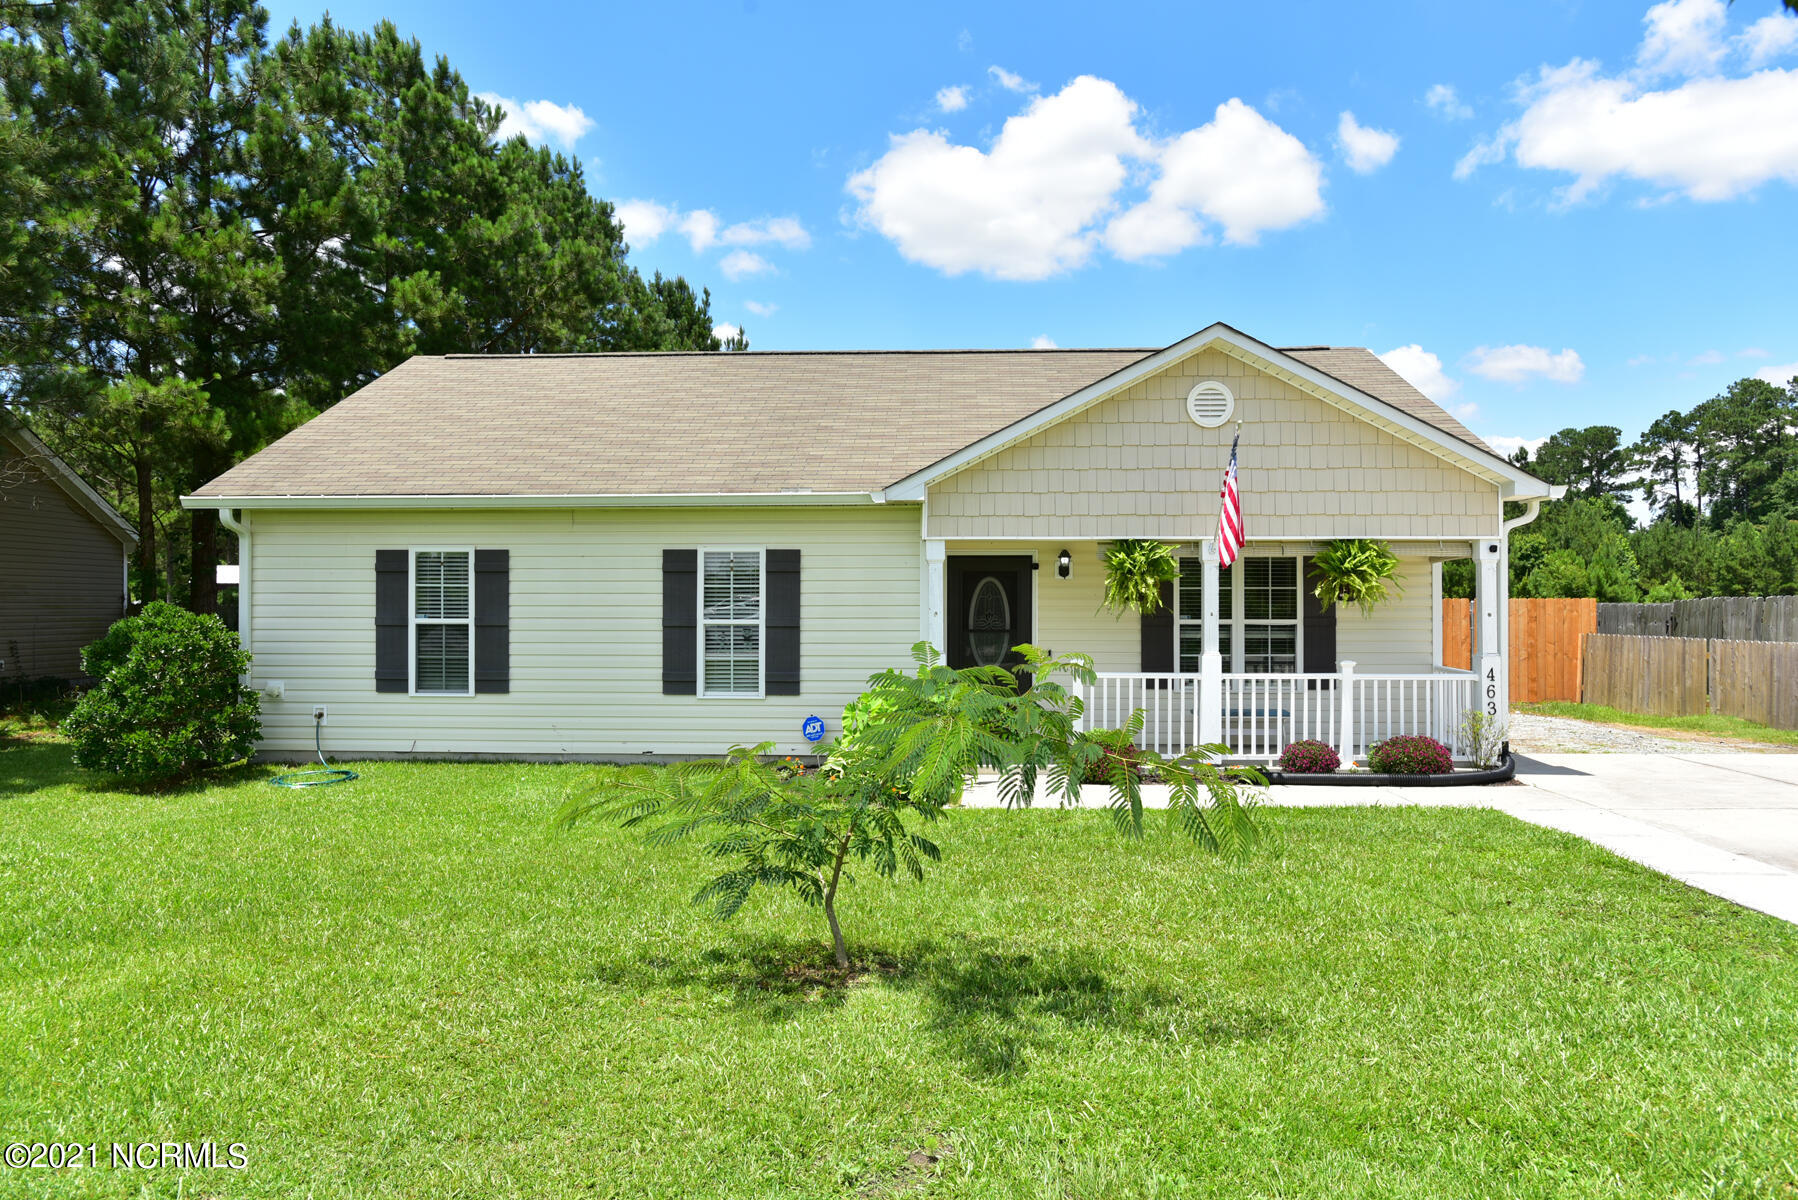 All the heart eyes for this sweet home in Maysville! Want to be close to all that Jacksonville and Swansboro have to offer, but without all the hustle and bustle? This is the home for you!! This 3 bedroom 2 bath home sits on just under 1/2 an acre with a fully fenced back yard. The inside has been recently renovated with all new LVP flooring and carpet throughout the home. That kitchen is Ah-ma-zing! Beautiful cabinets, granite countertops, tile backsplash, large single basin sink and LG stainless steel appliances make it perfect for those who love to cook! All bedrooms are of great size with plenty of closet space. The master bedroom has vaulted ceilings, large walk in closet and en suite bathroom for extra privacy. Out back there's pleny of room to grow your own garden if thats your thing, there's already a space for that, right next to the fig trees!! The 25x30 structure with 2 roll up doors is plenty of room to store just about anything you can think of, including 2 vehicles! The possibilities are endless. Come take a look and make this house your home!